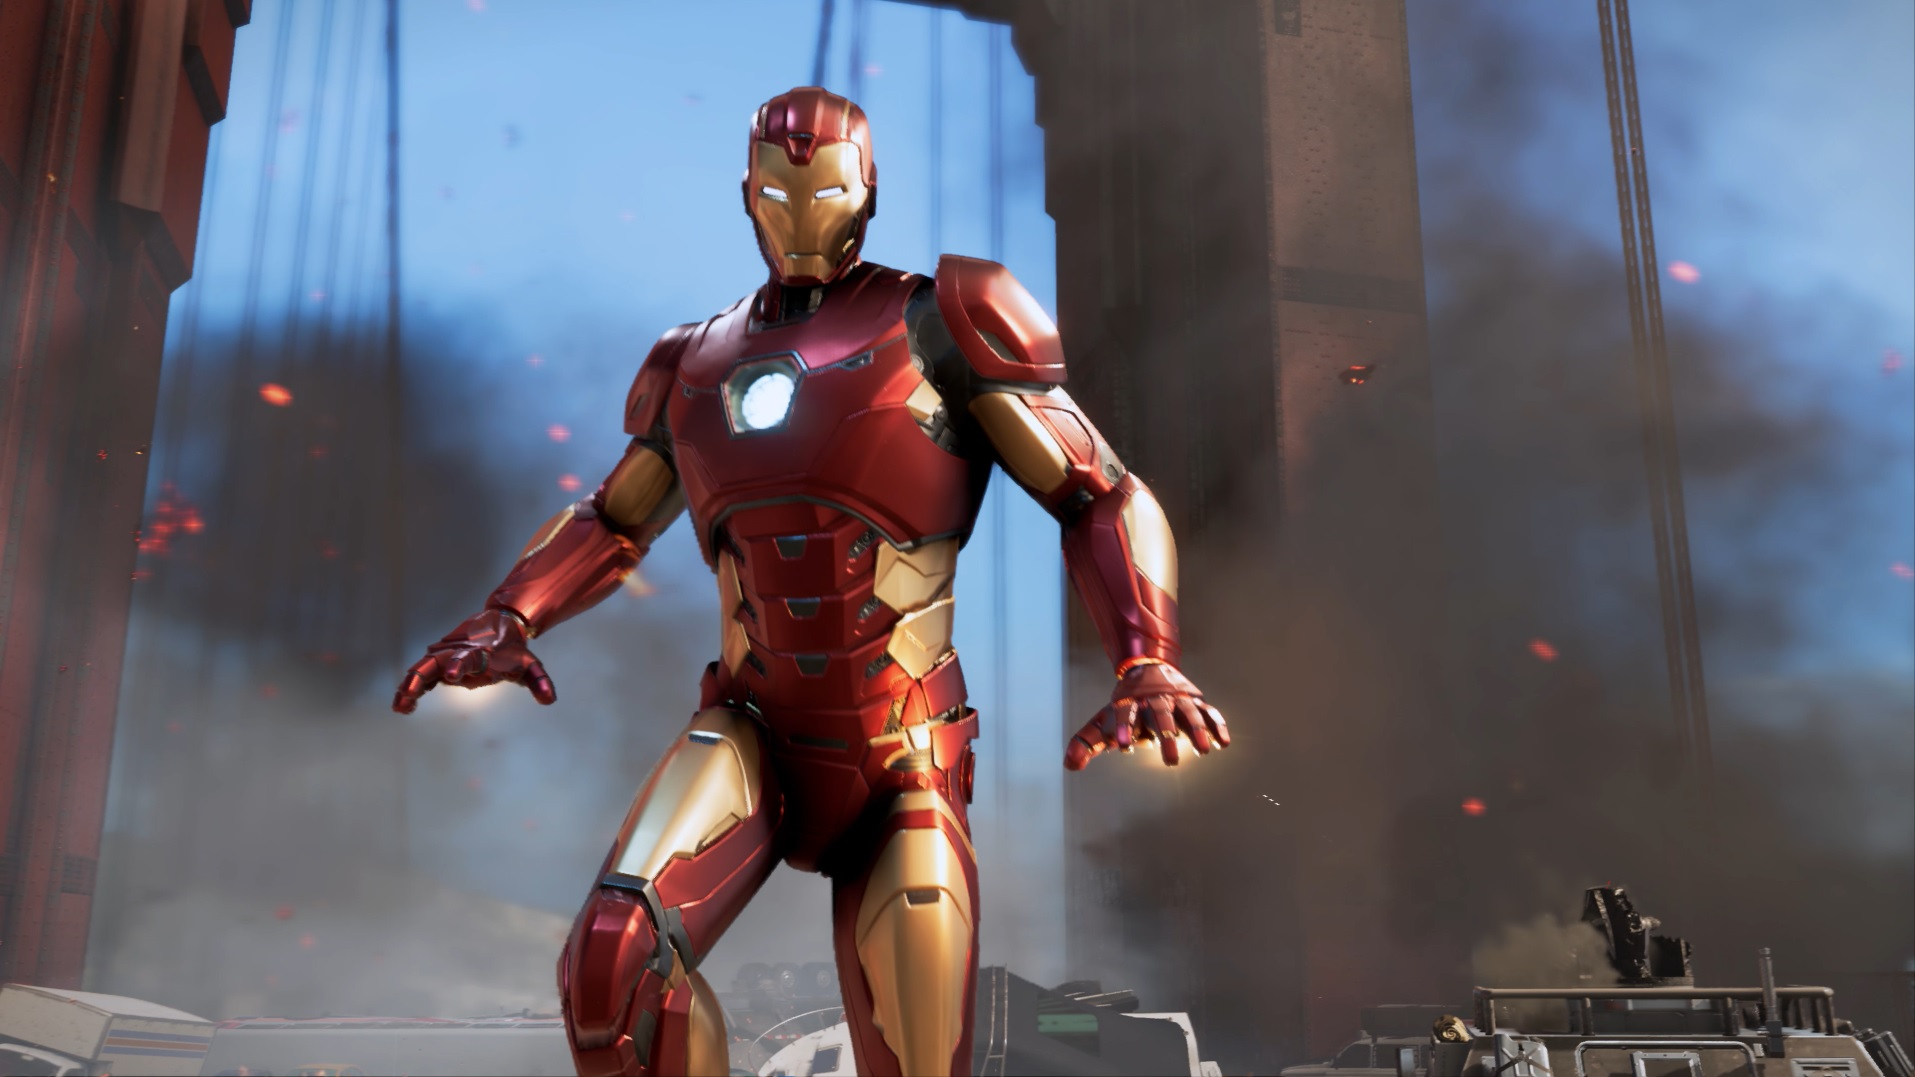 Square Enix releasing Marvel's Avengers demo footage in late August | PC Gamer